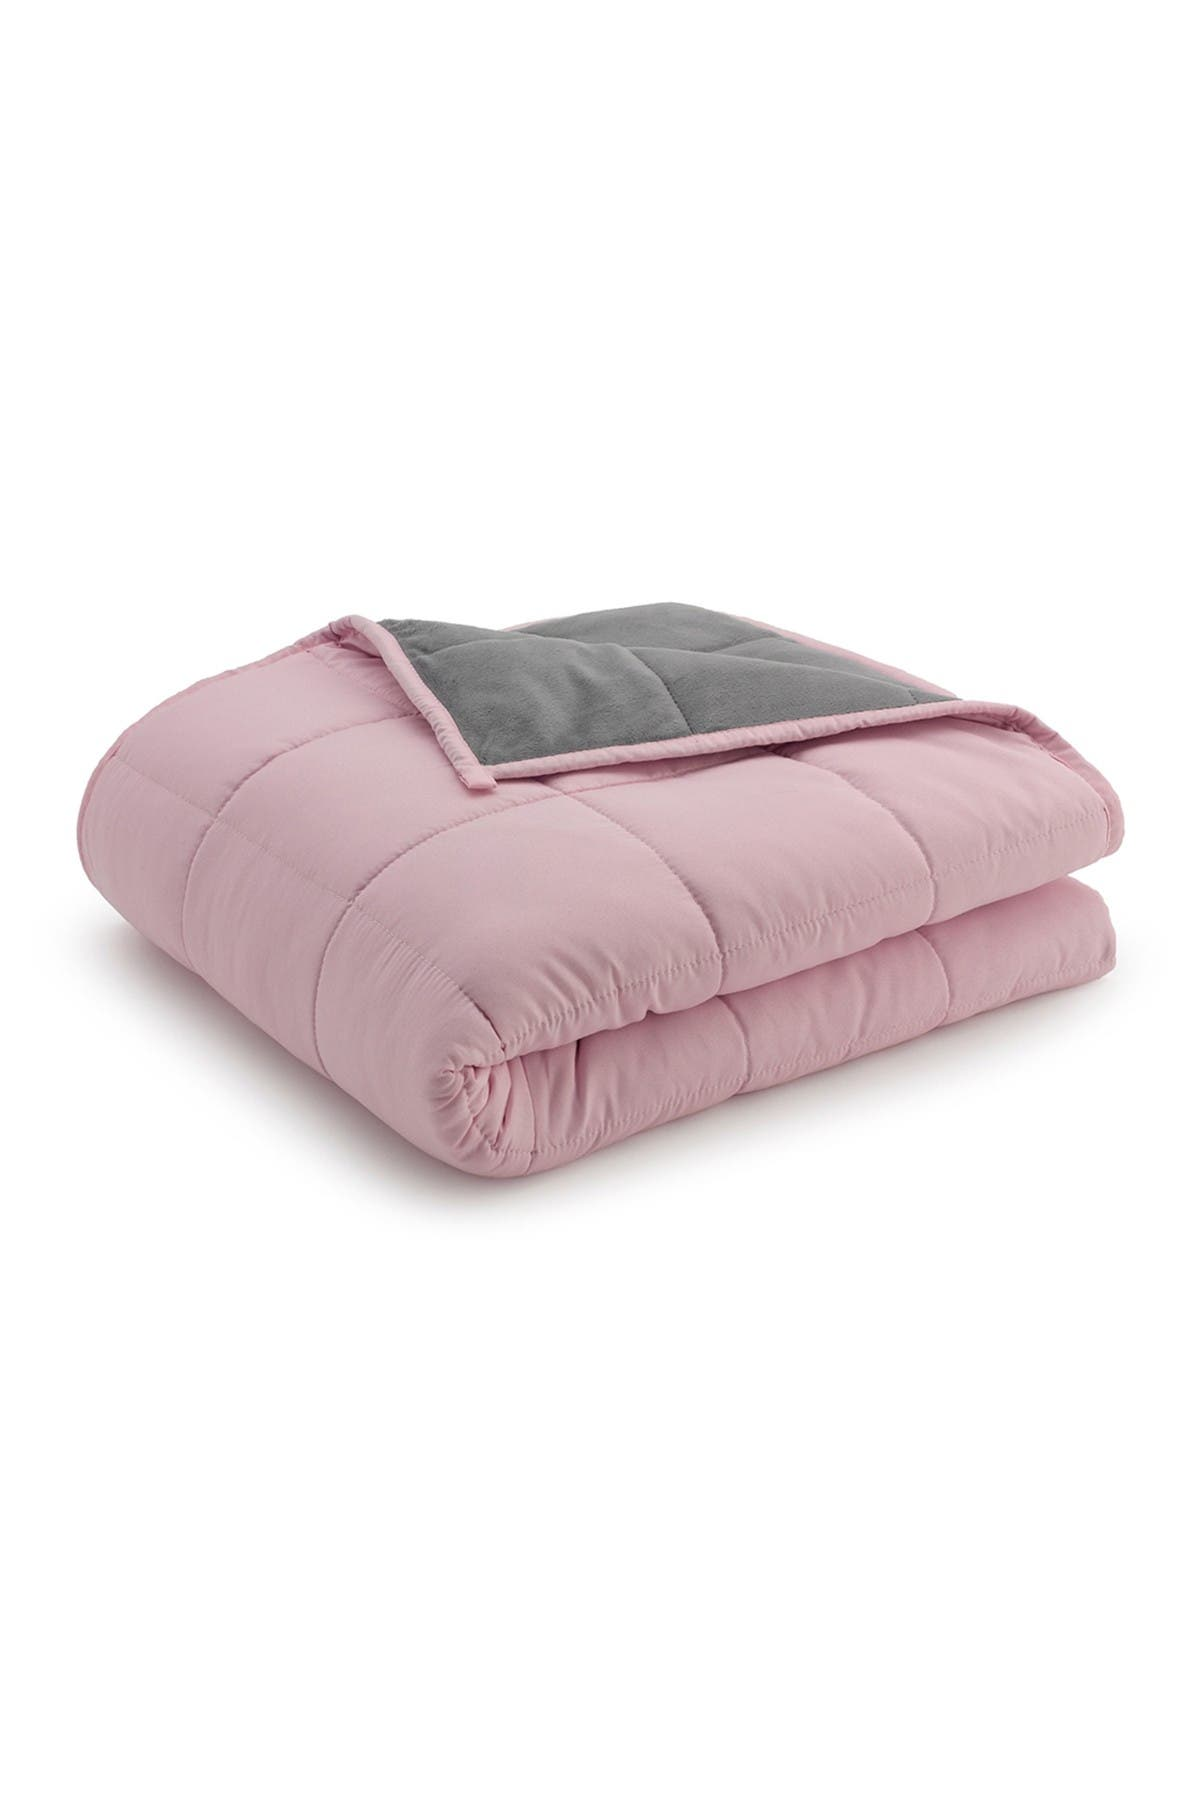 Image of Ella Jayne Reversible Weighted Anti-Anxiety Blanket - Grey/Pink - 15lbs